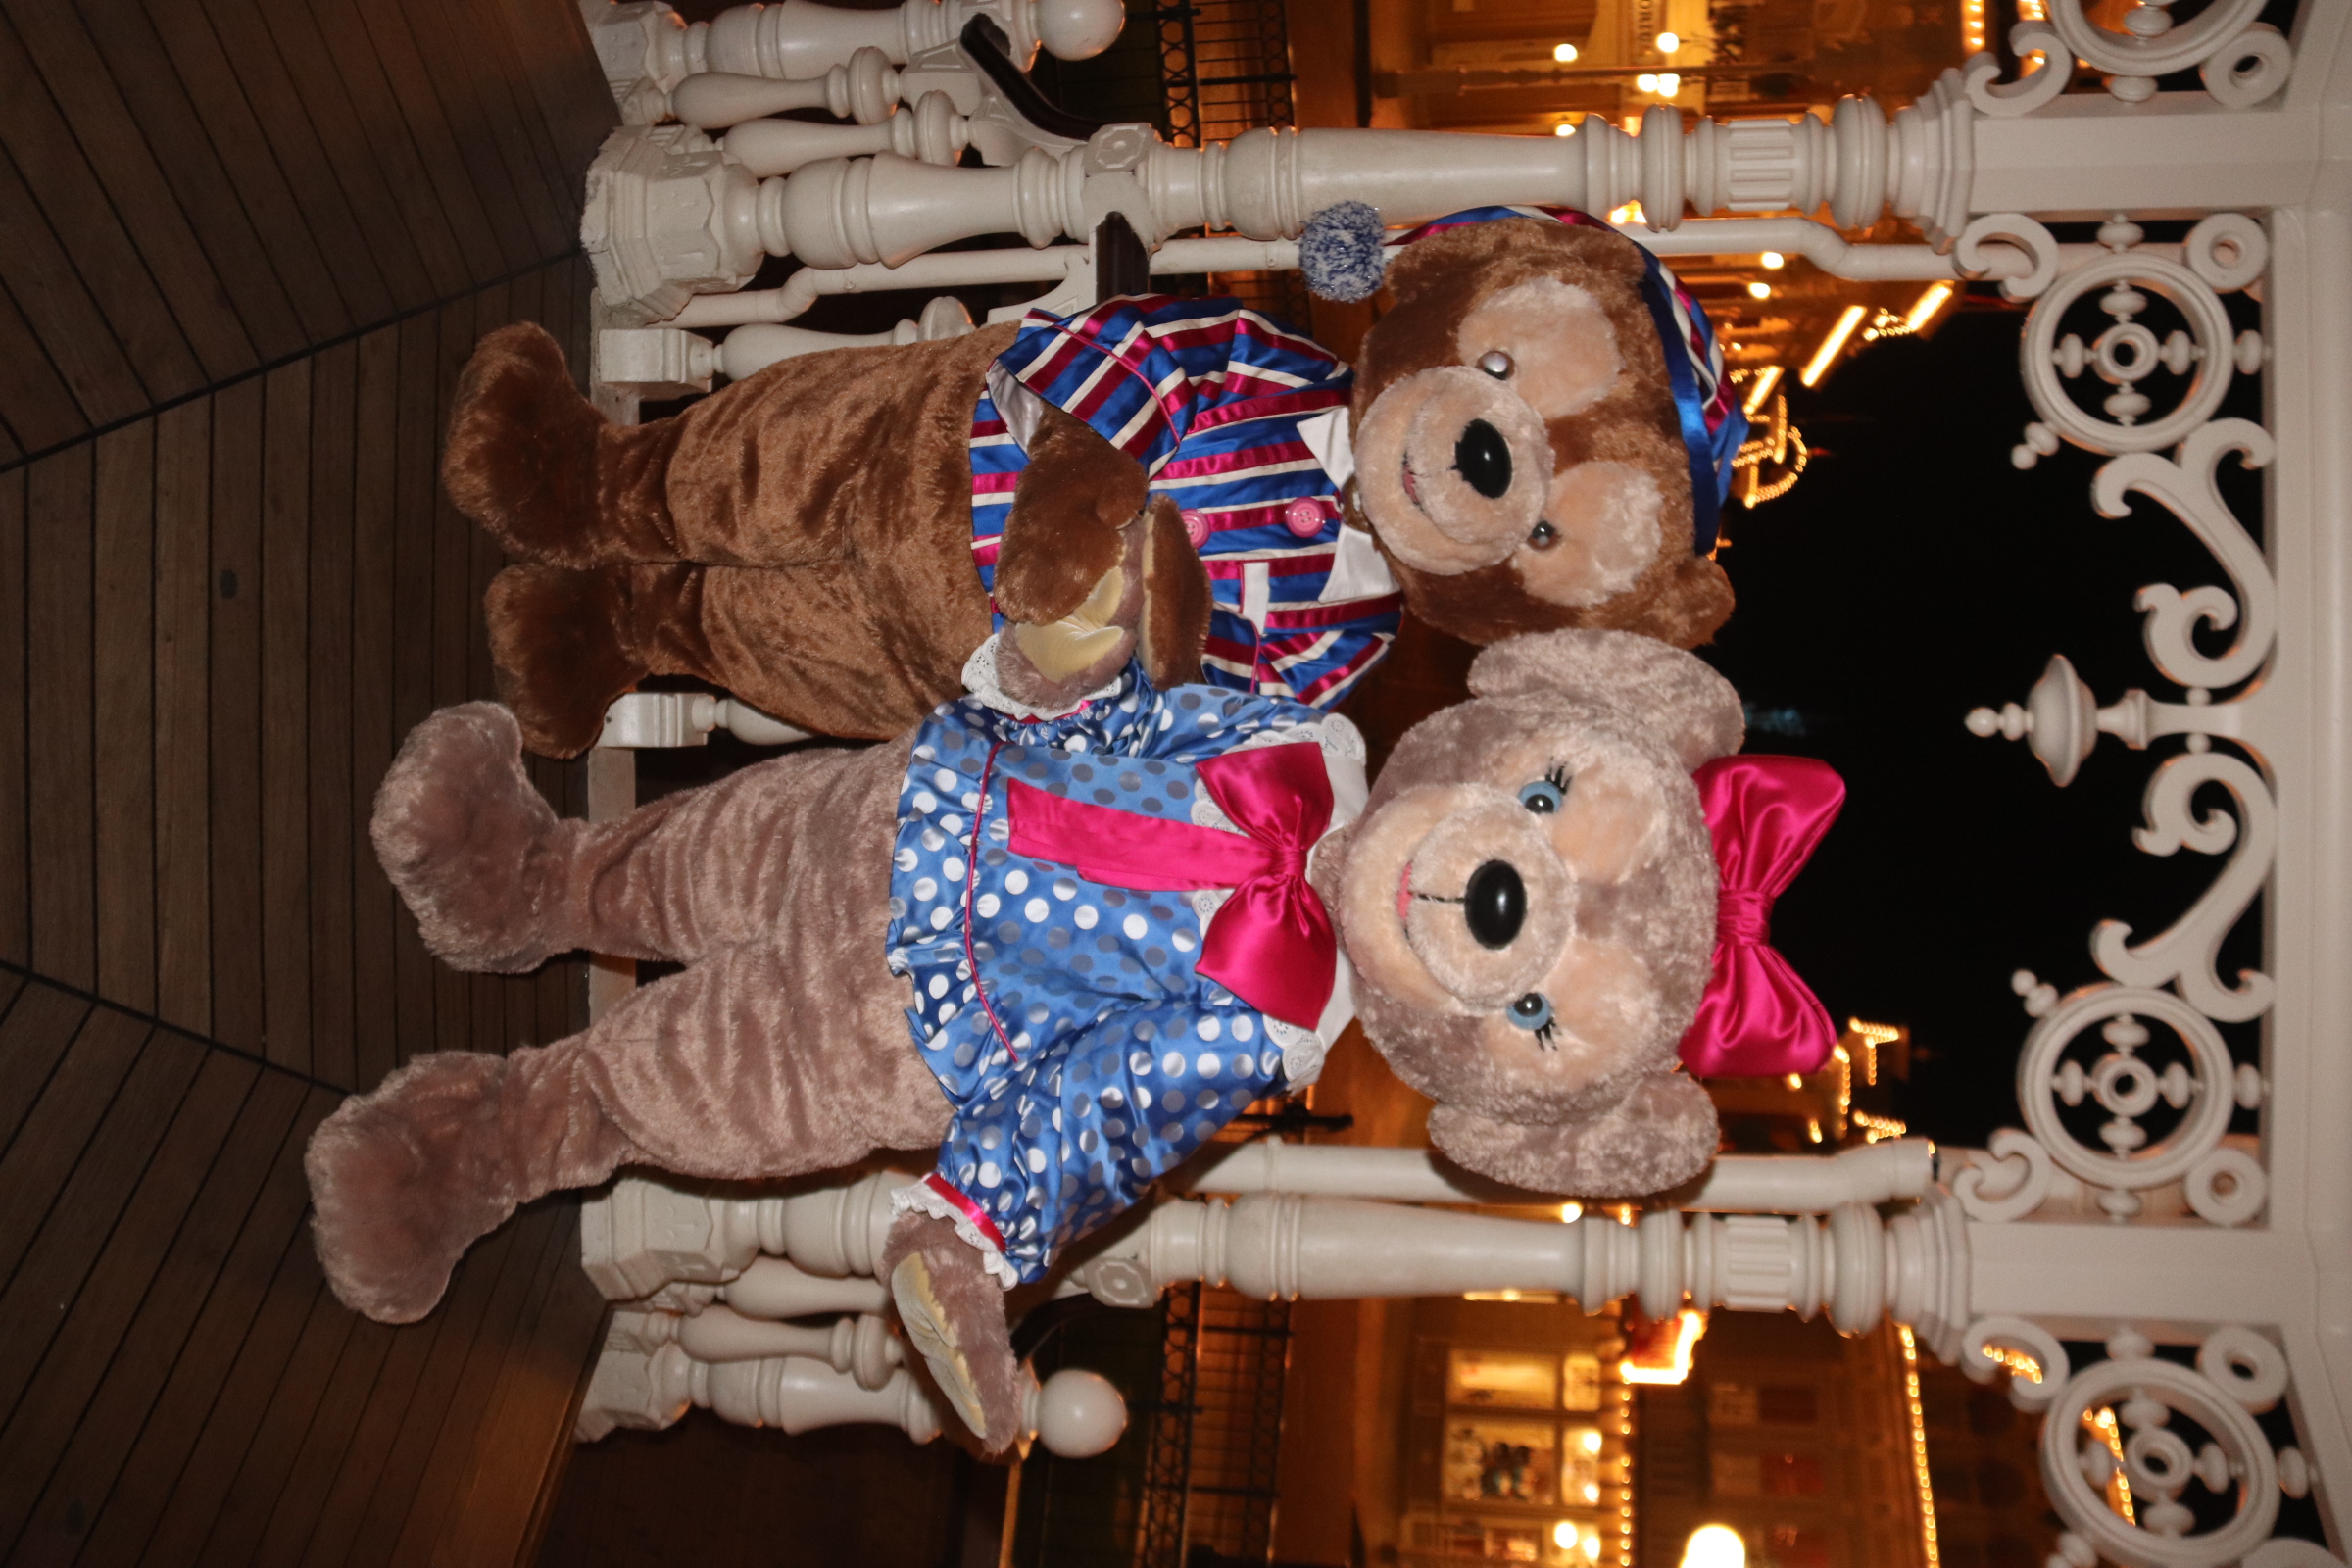 Bedtime Story Duffy and ShellieMay